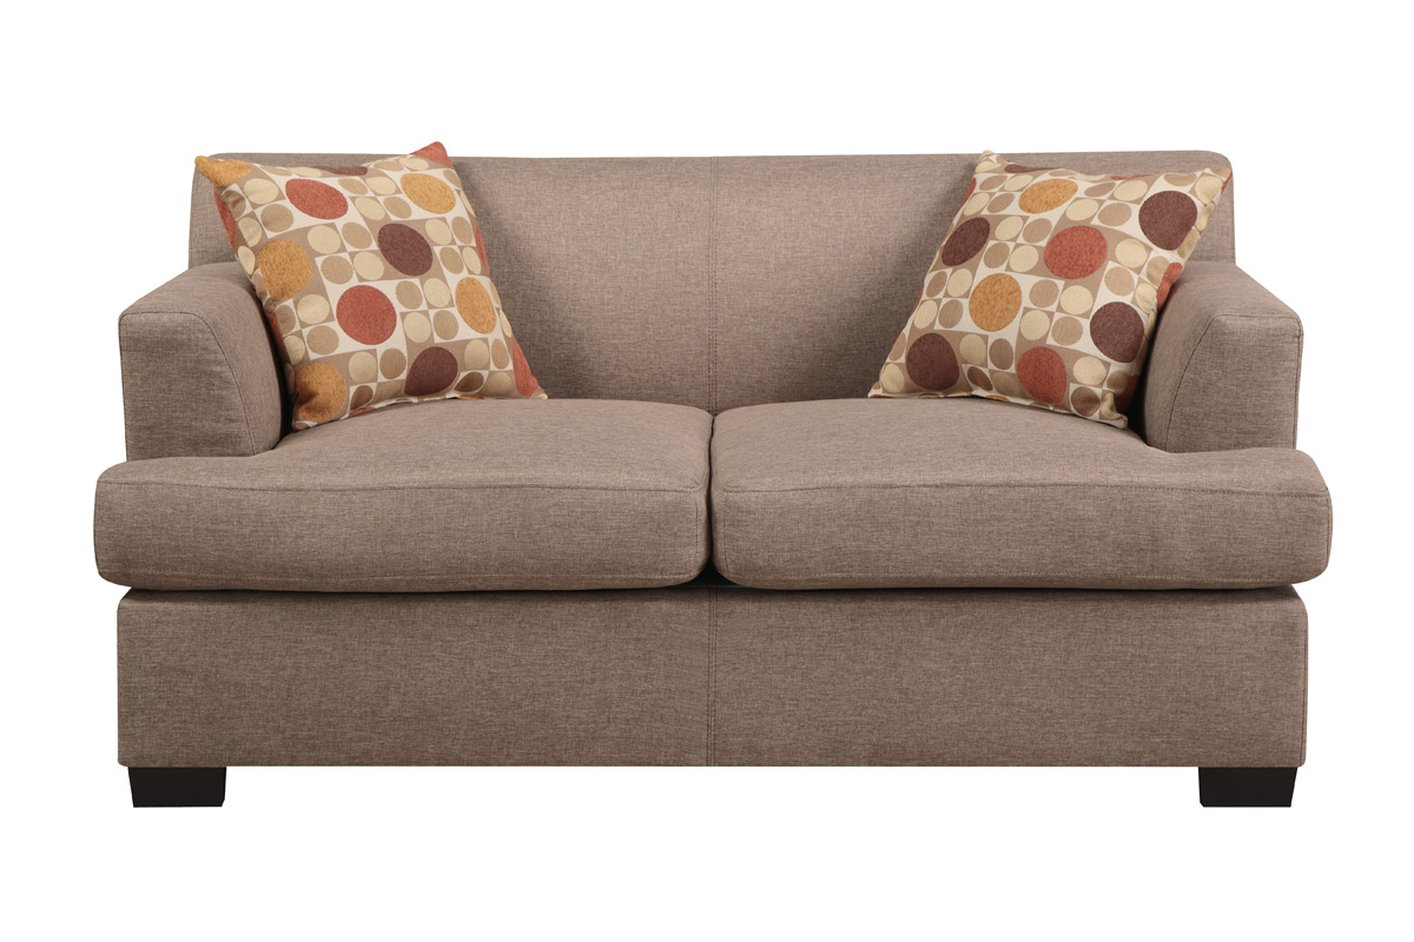 Unique fabric loveseats images Fabric sofas and loveseats